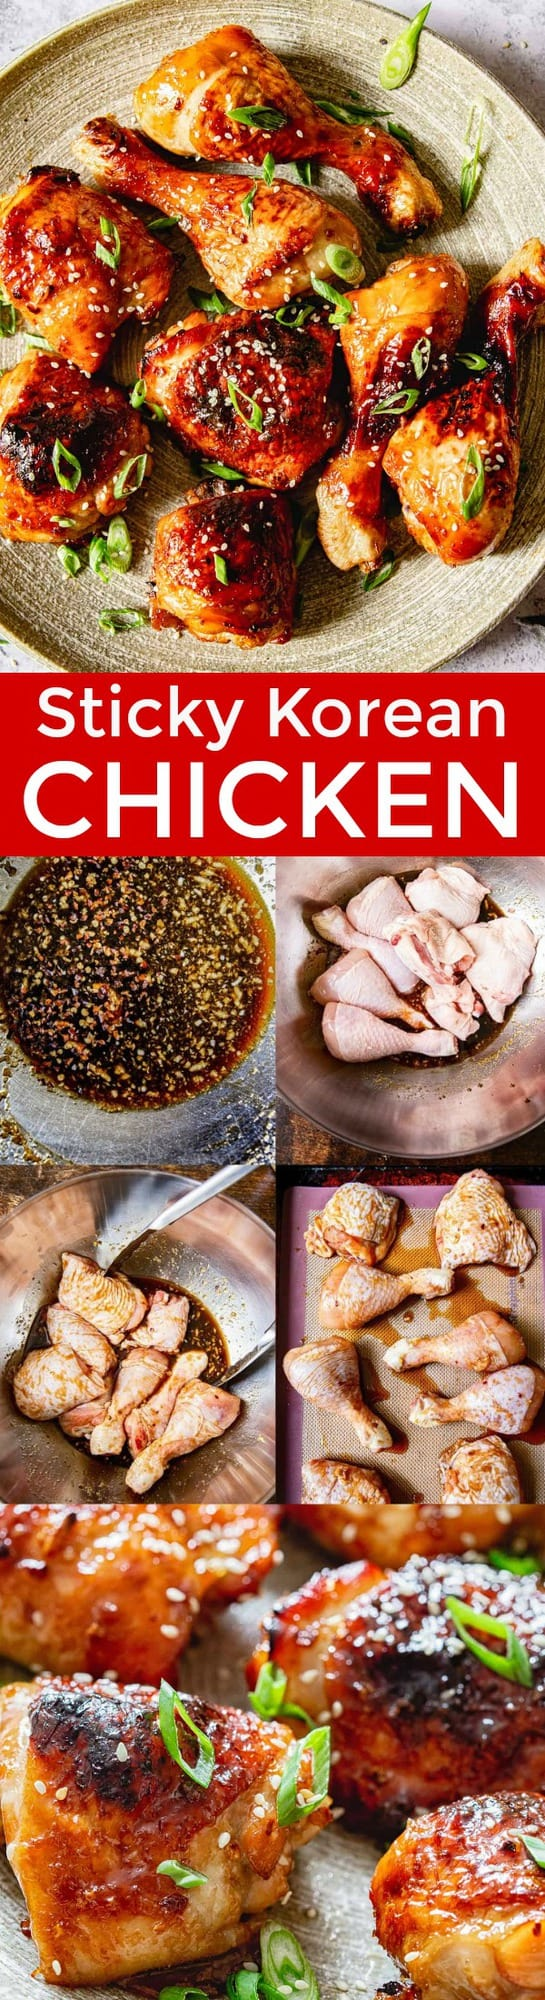 A quick and easy recipe for Korean chicken using simple and easy to source ingredients. This chicken is a wonderful mix of the sweet, sour and savoury. Master this restaurant quality Sticky Asian Chicken recipe at home! | natashaskitchen.com